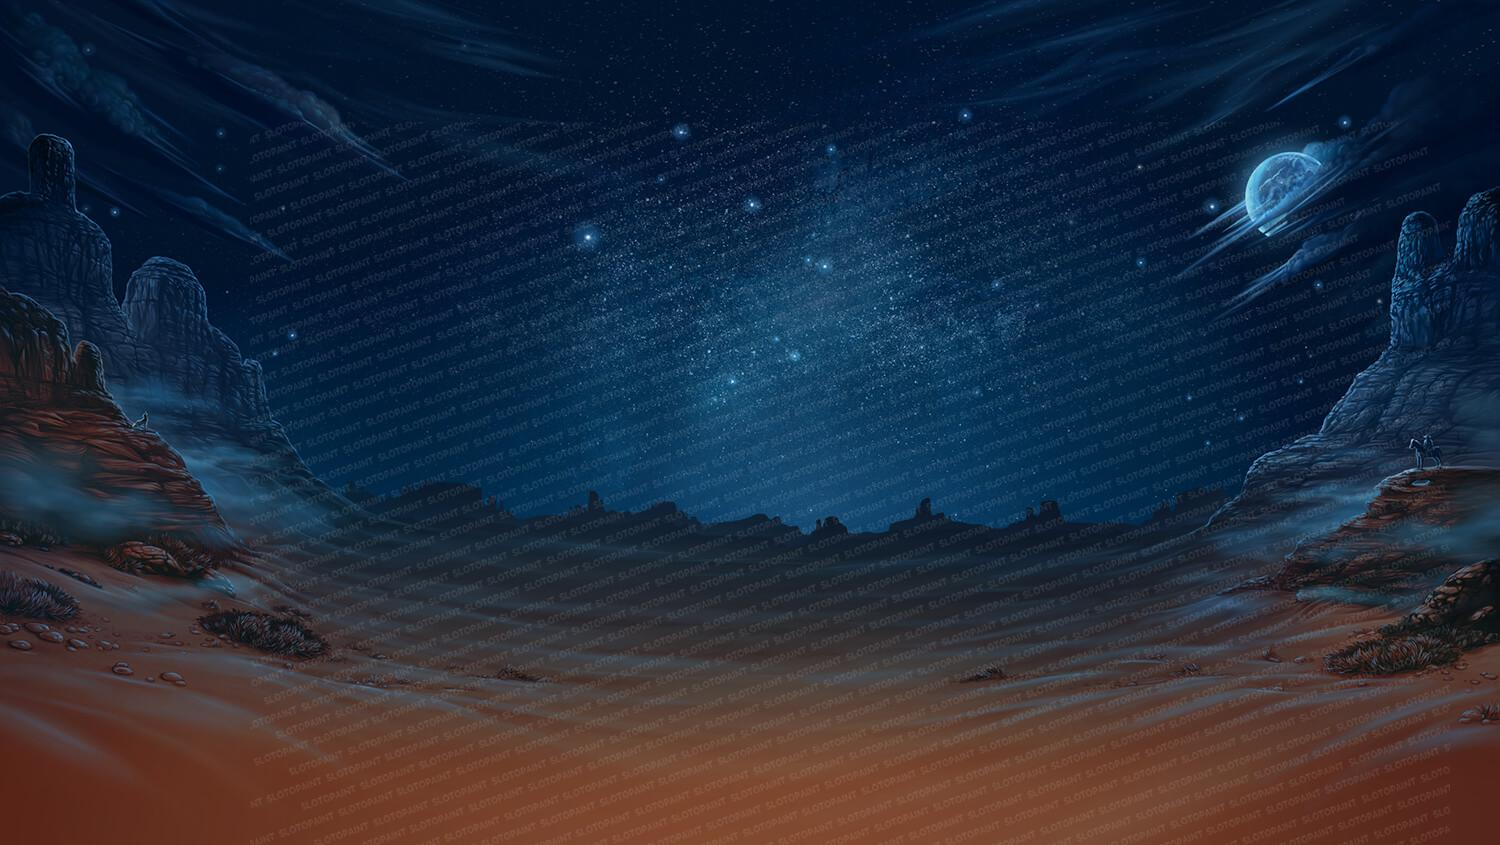 western_background_night